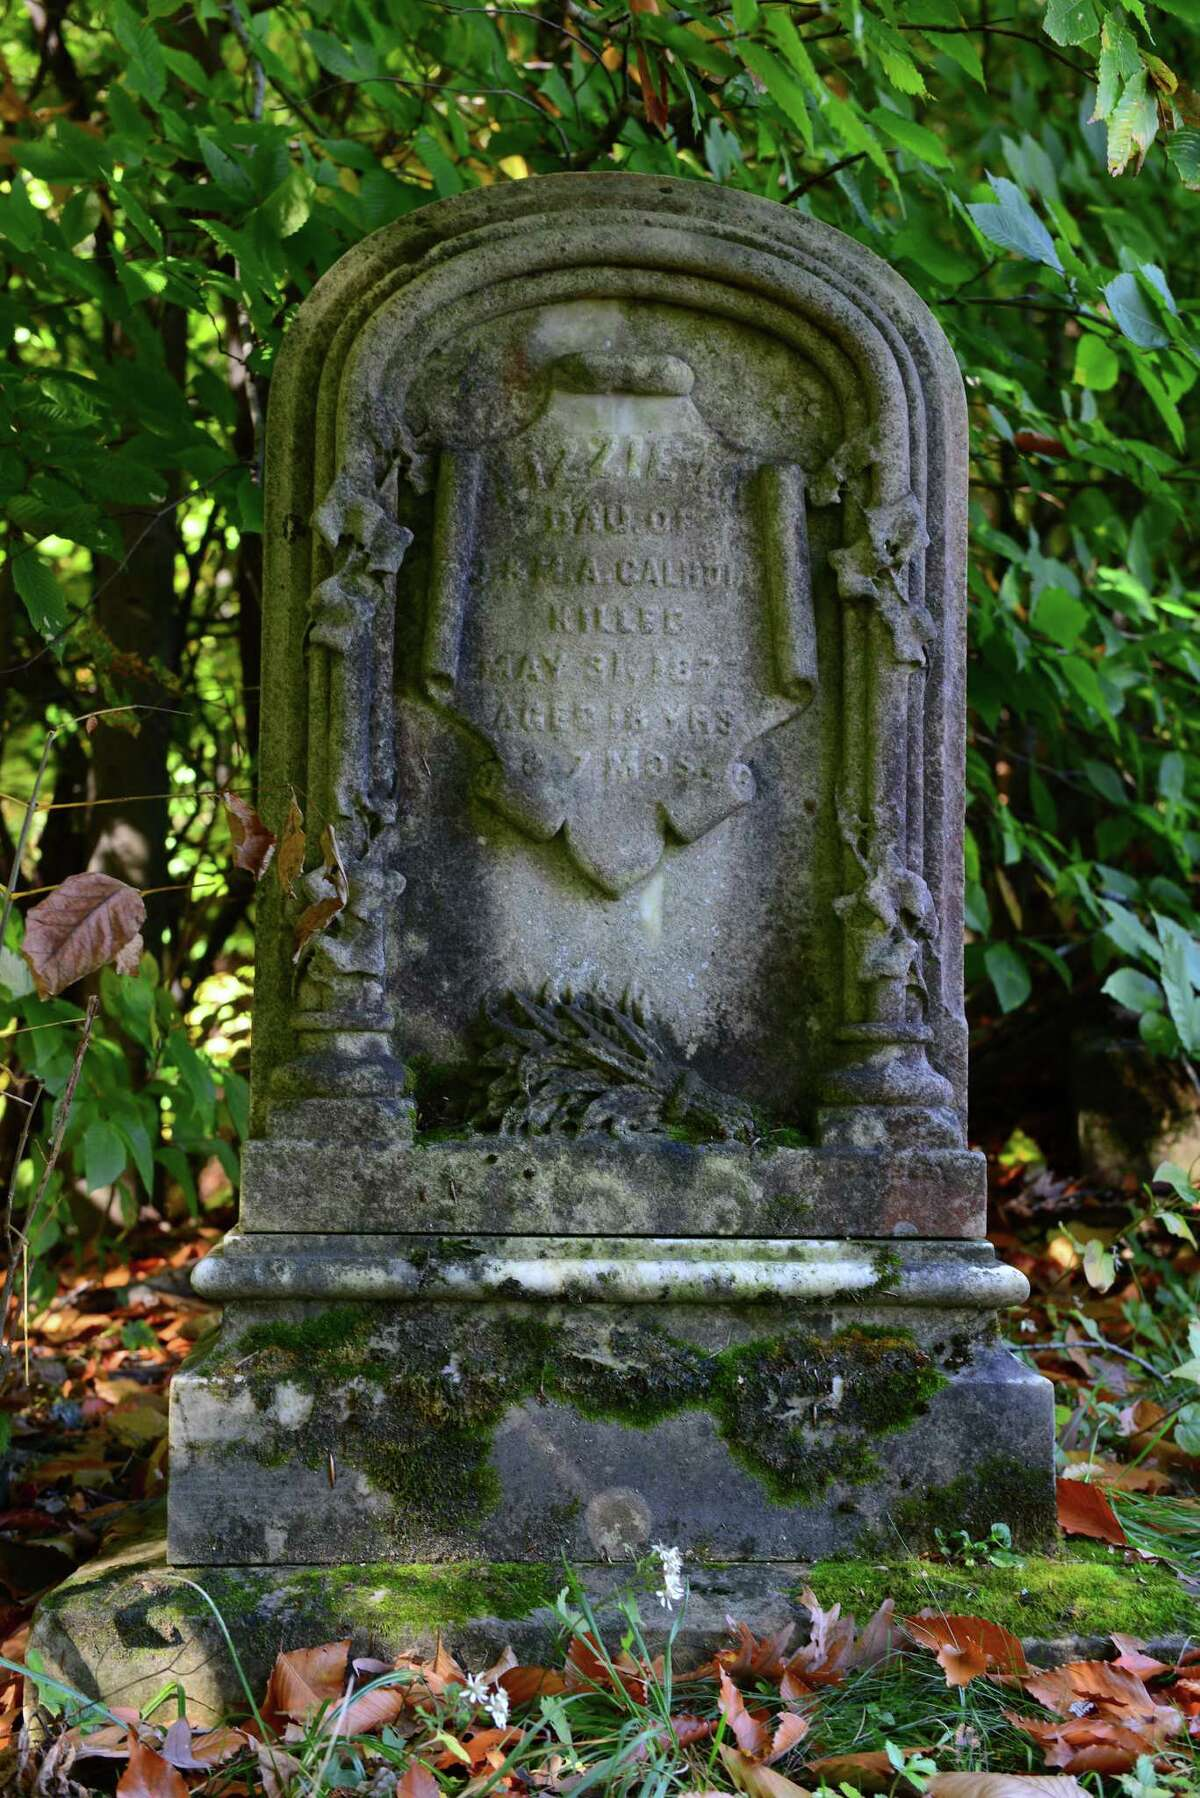 The grave of Lizzie Calhoun at Albany Rural Cemetery. Calhoun died in the cemetery during a runaway horse accident on June 1, 1877.